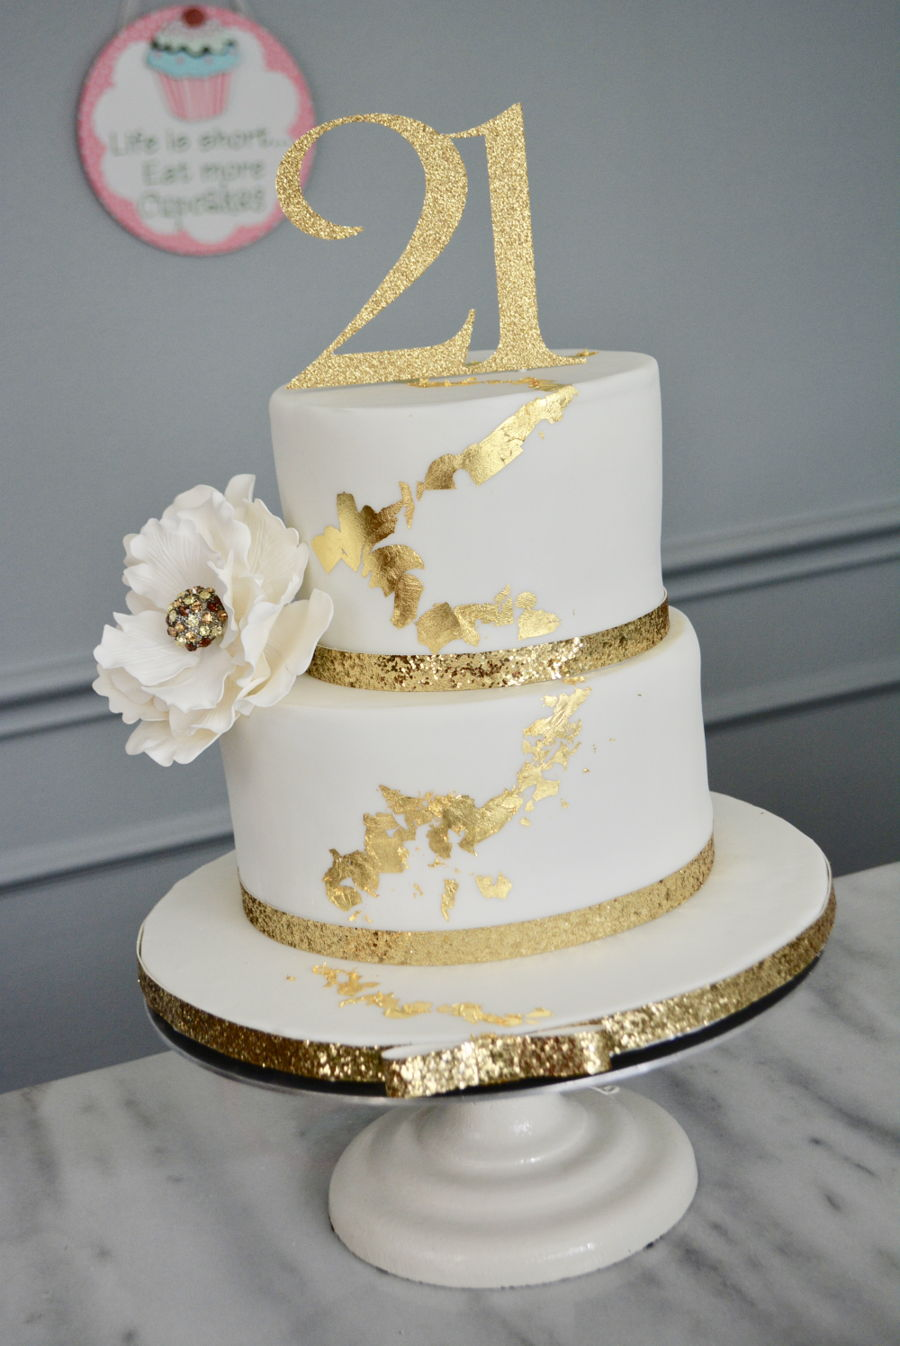 Gold Leaves Cake Decoration : Gold Leaf Cake - CakeCentral.com